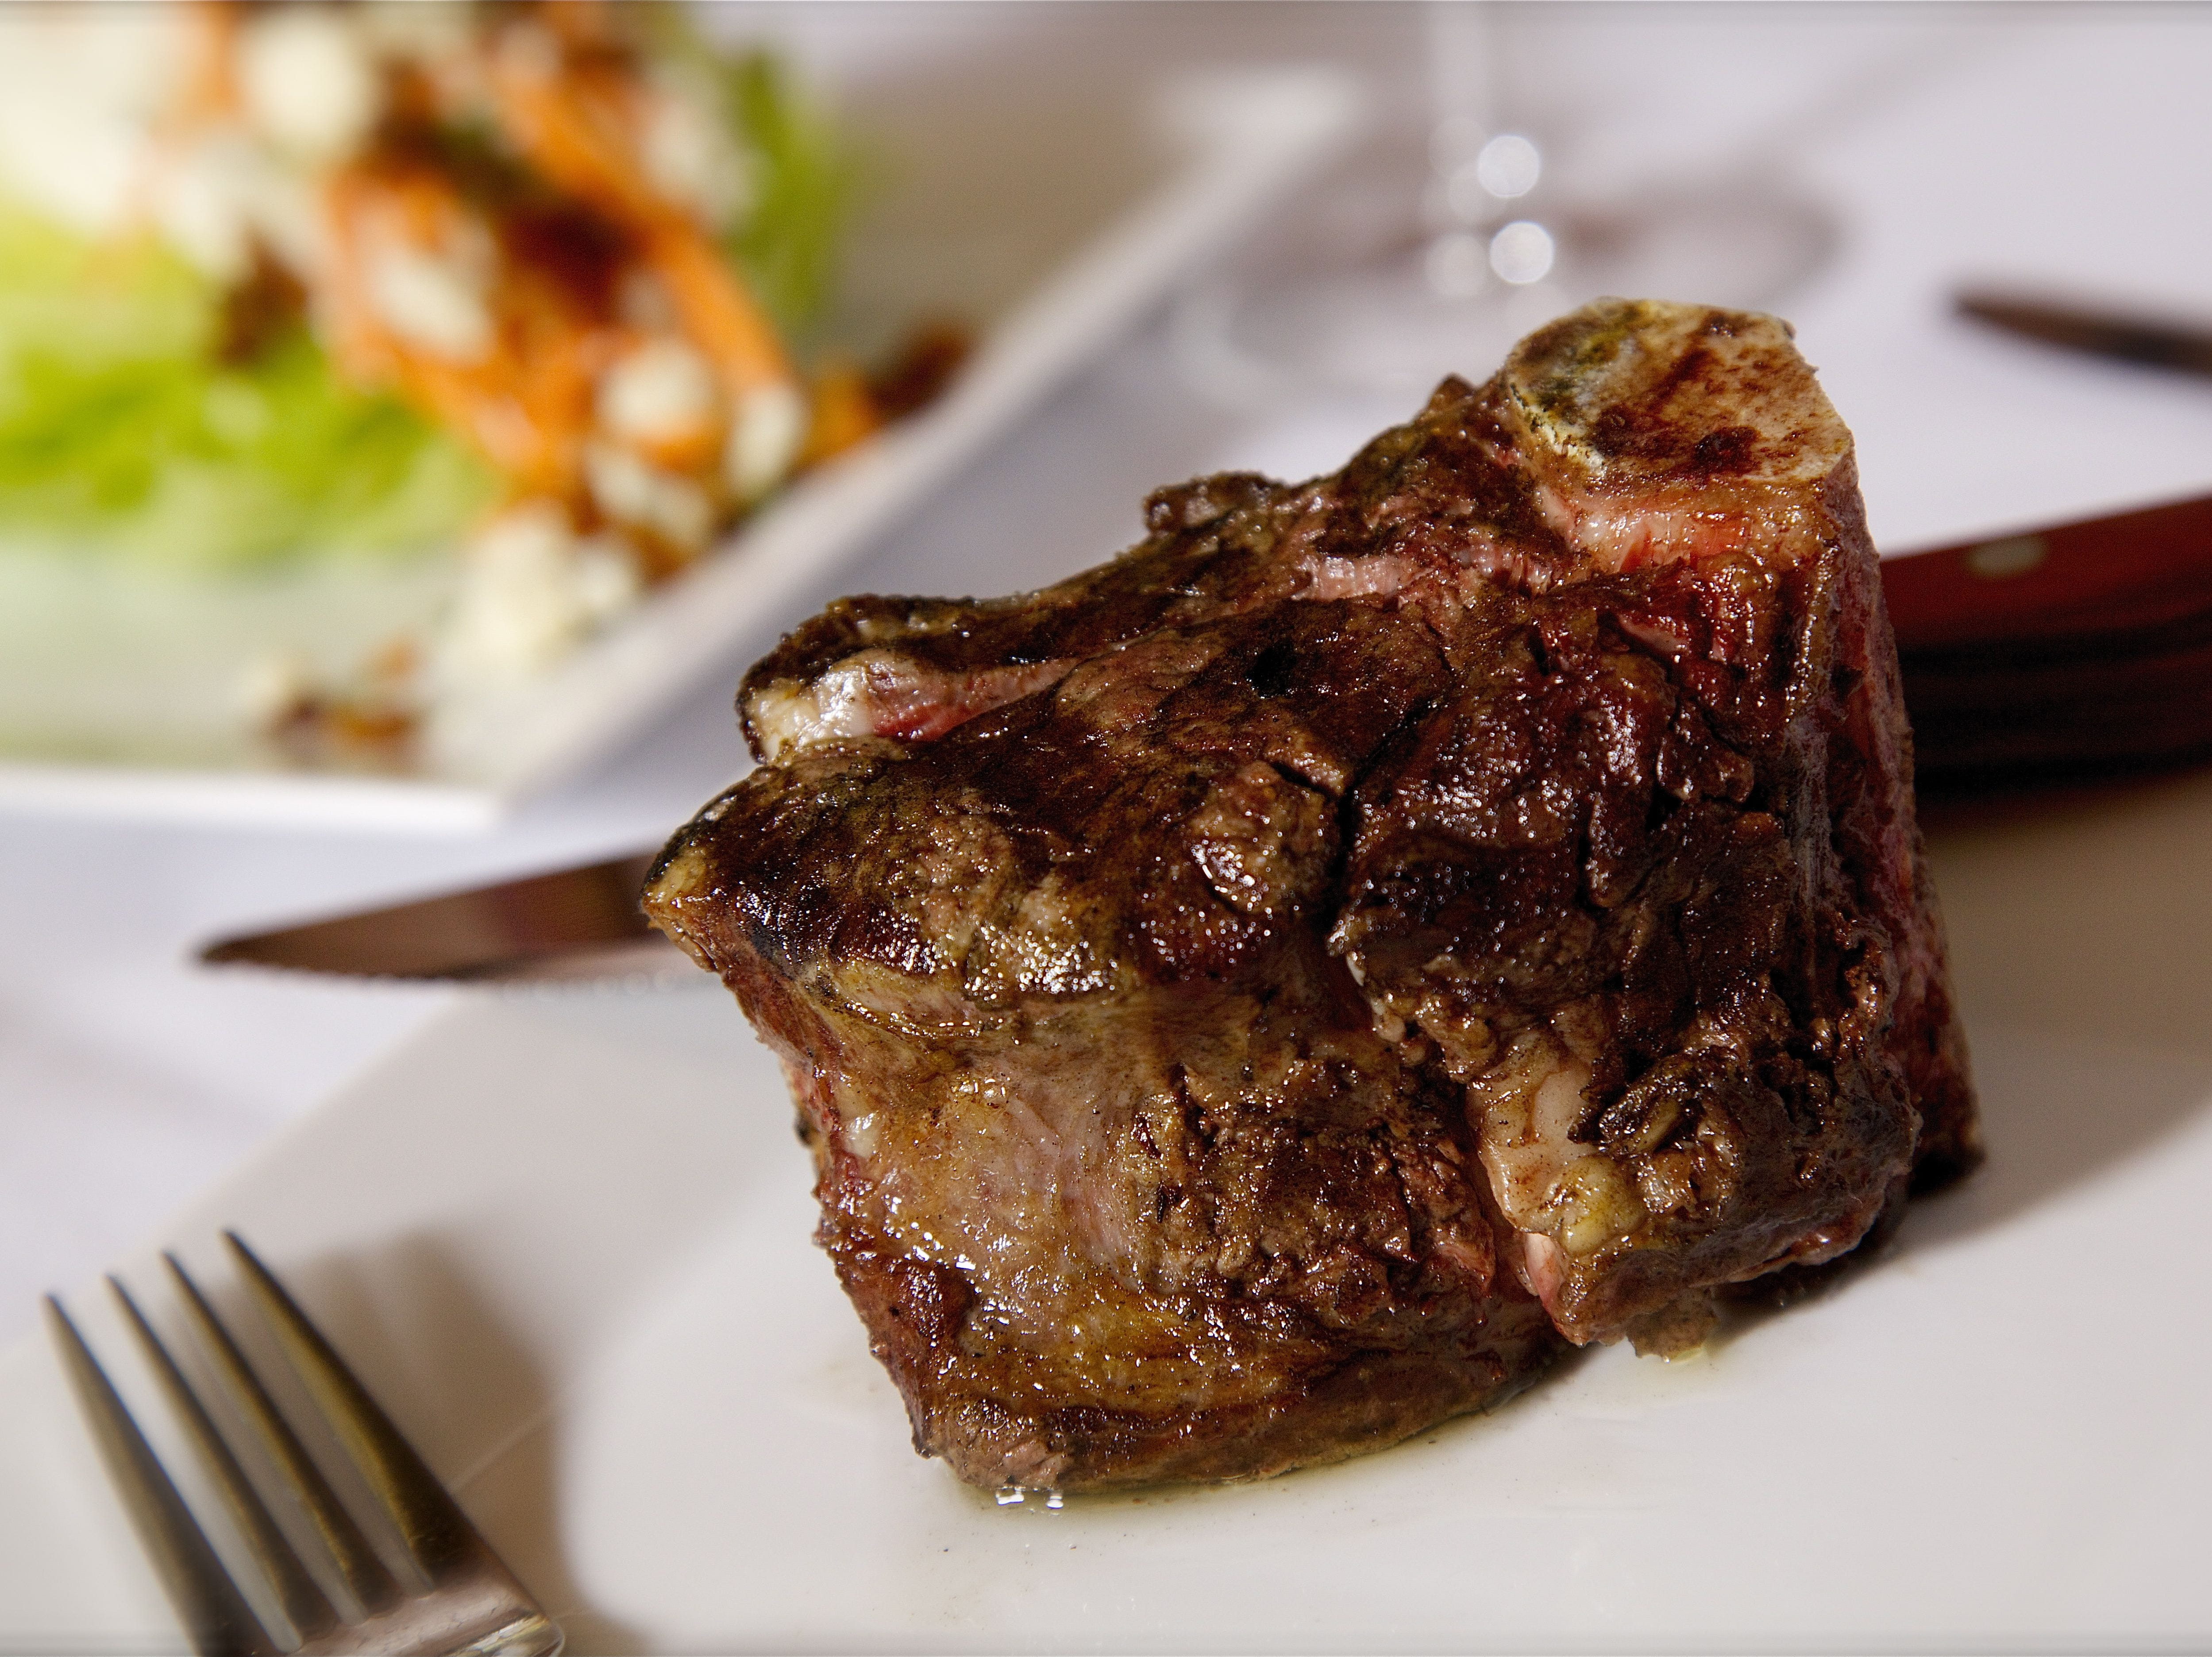 KEELER'S NEIGHBORHOOD STEAKHOUSE: From 10 a.m.-2 p.m., a buffet ($49, $12 additional for bottomless bloody marys and mimosas, $19 for ages 10 and younger) offers selections such as prime rib carving and slider stations, shrimp cocktail, pancakes, green chile pork chilaquiles, lobster bruschetta and other breakfast and lunch favorites. From 5-8 p.m., a three-course menu ($70) will feature a choice of starter and dessert, with entrée options including pan-seared half rack of lamb, a 12-ounce prime filet mignon, twin lobster tails and pan seared sea bass, all served with sides.DETAILS: 7212 E. Ho Hum Road, Carefree. 602-374-4784, keelerssteakhouse.com.